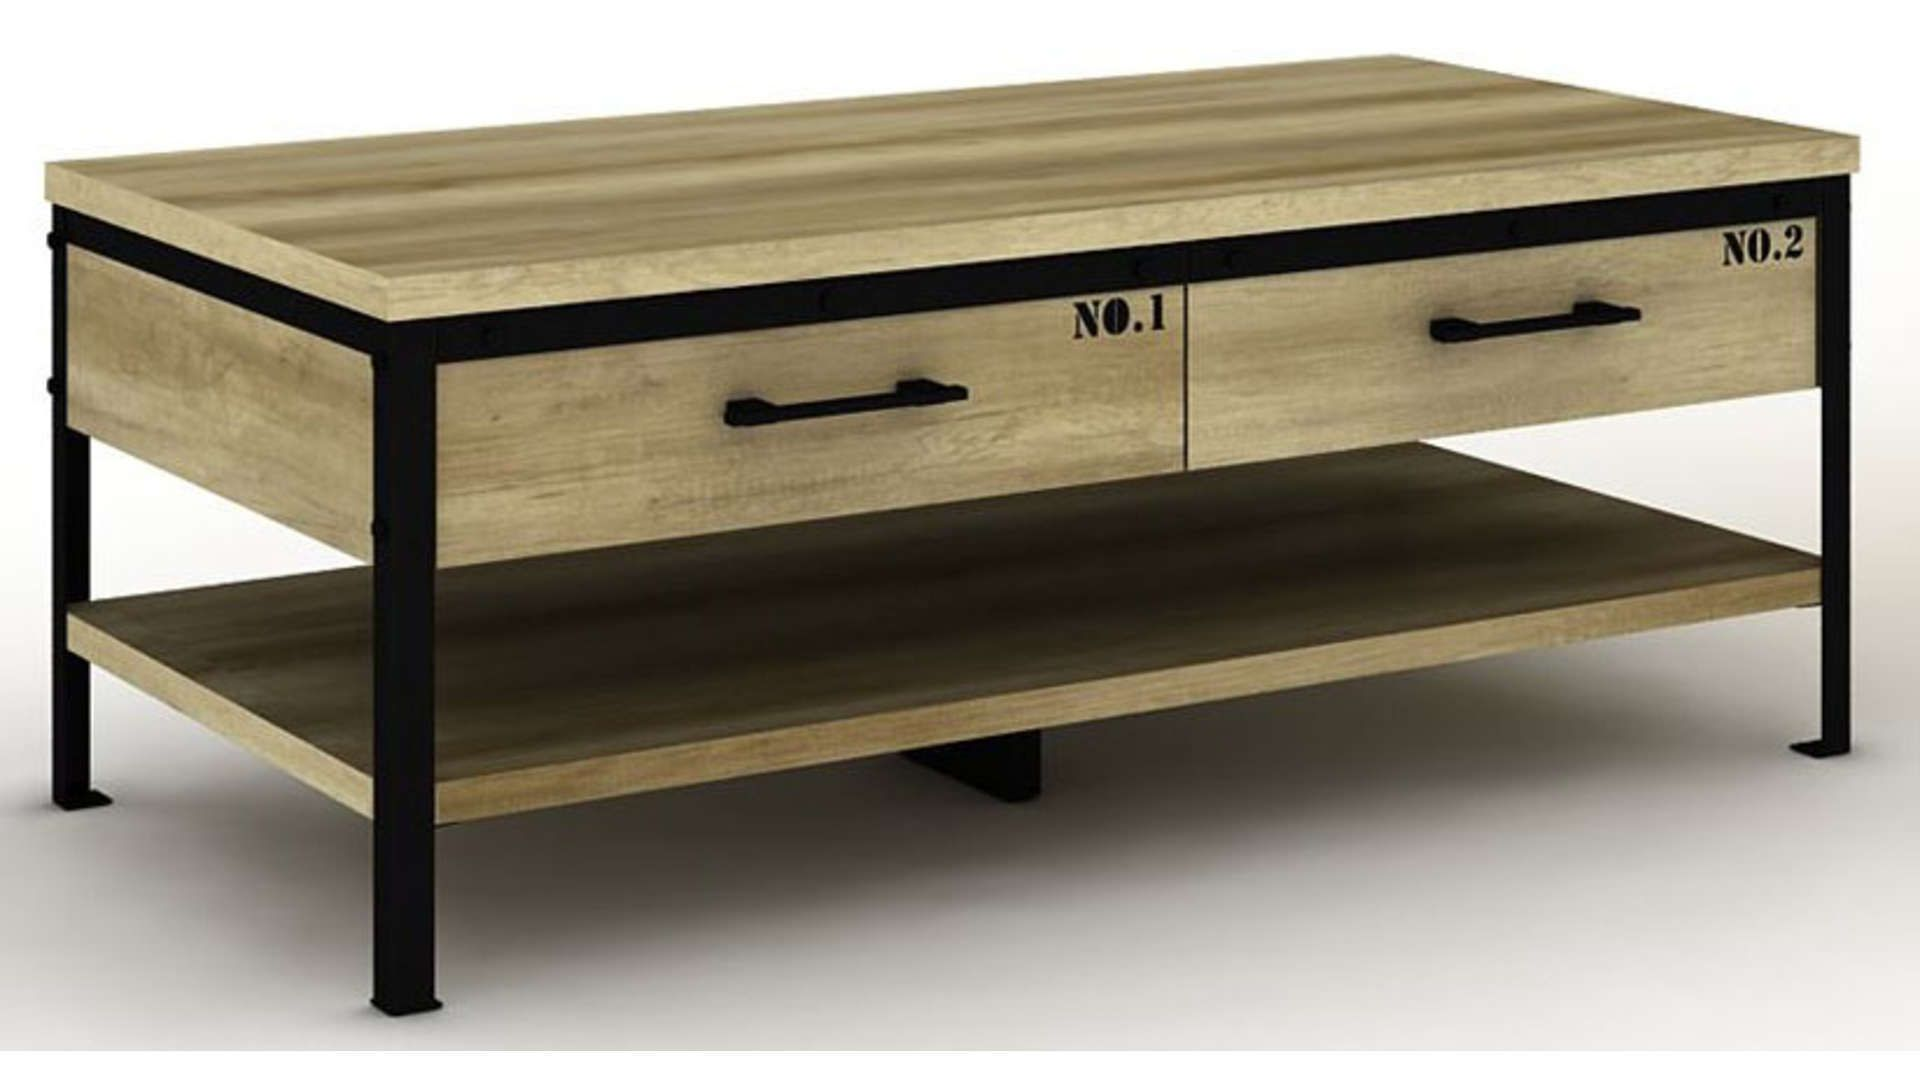 Table Basse 557375 Table Basse Conforama Table Basse Table De Salon